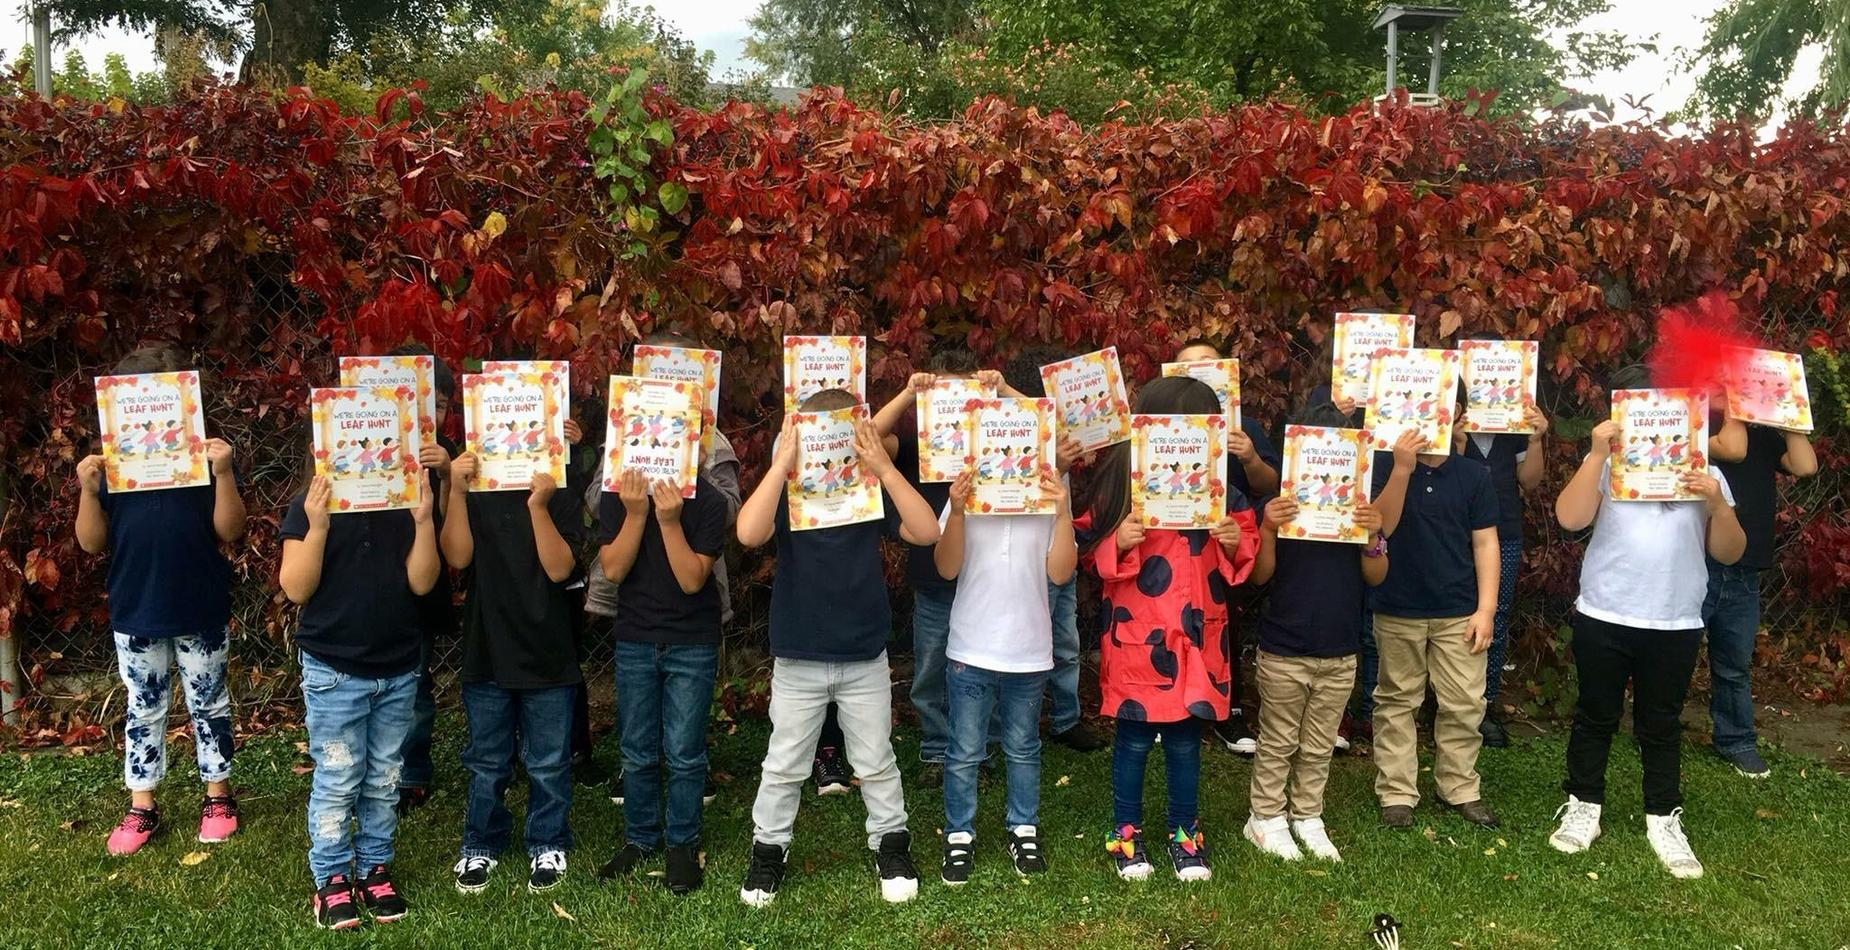 A group of kindergarten students are showing their donated books for the month of October.